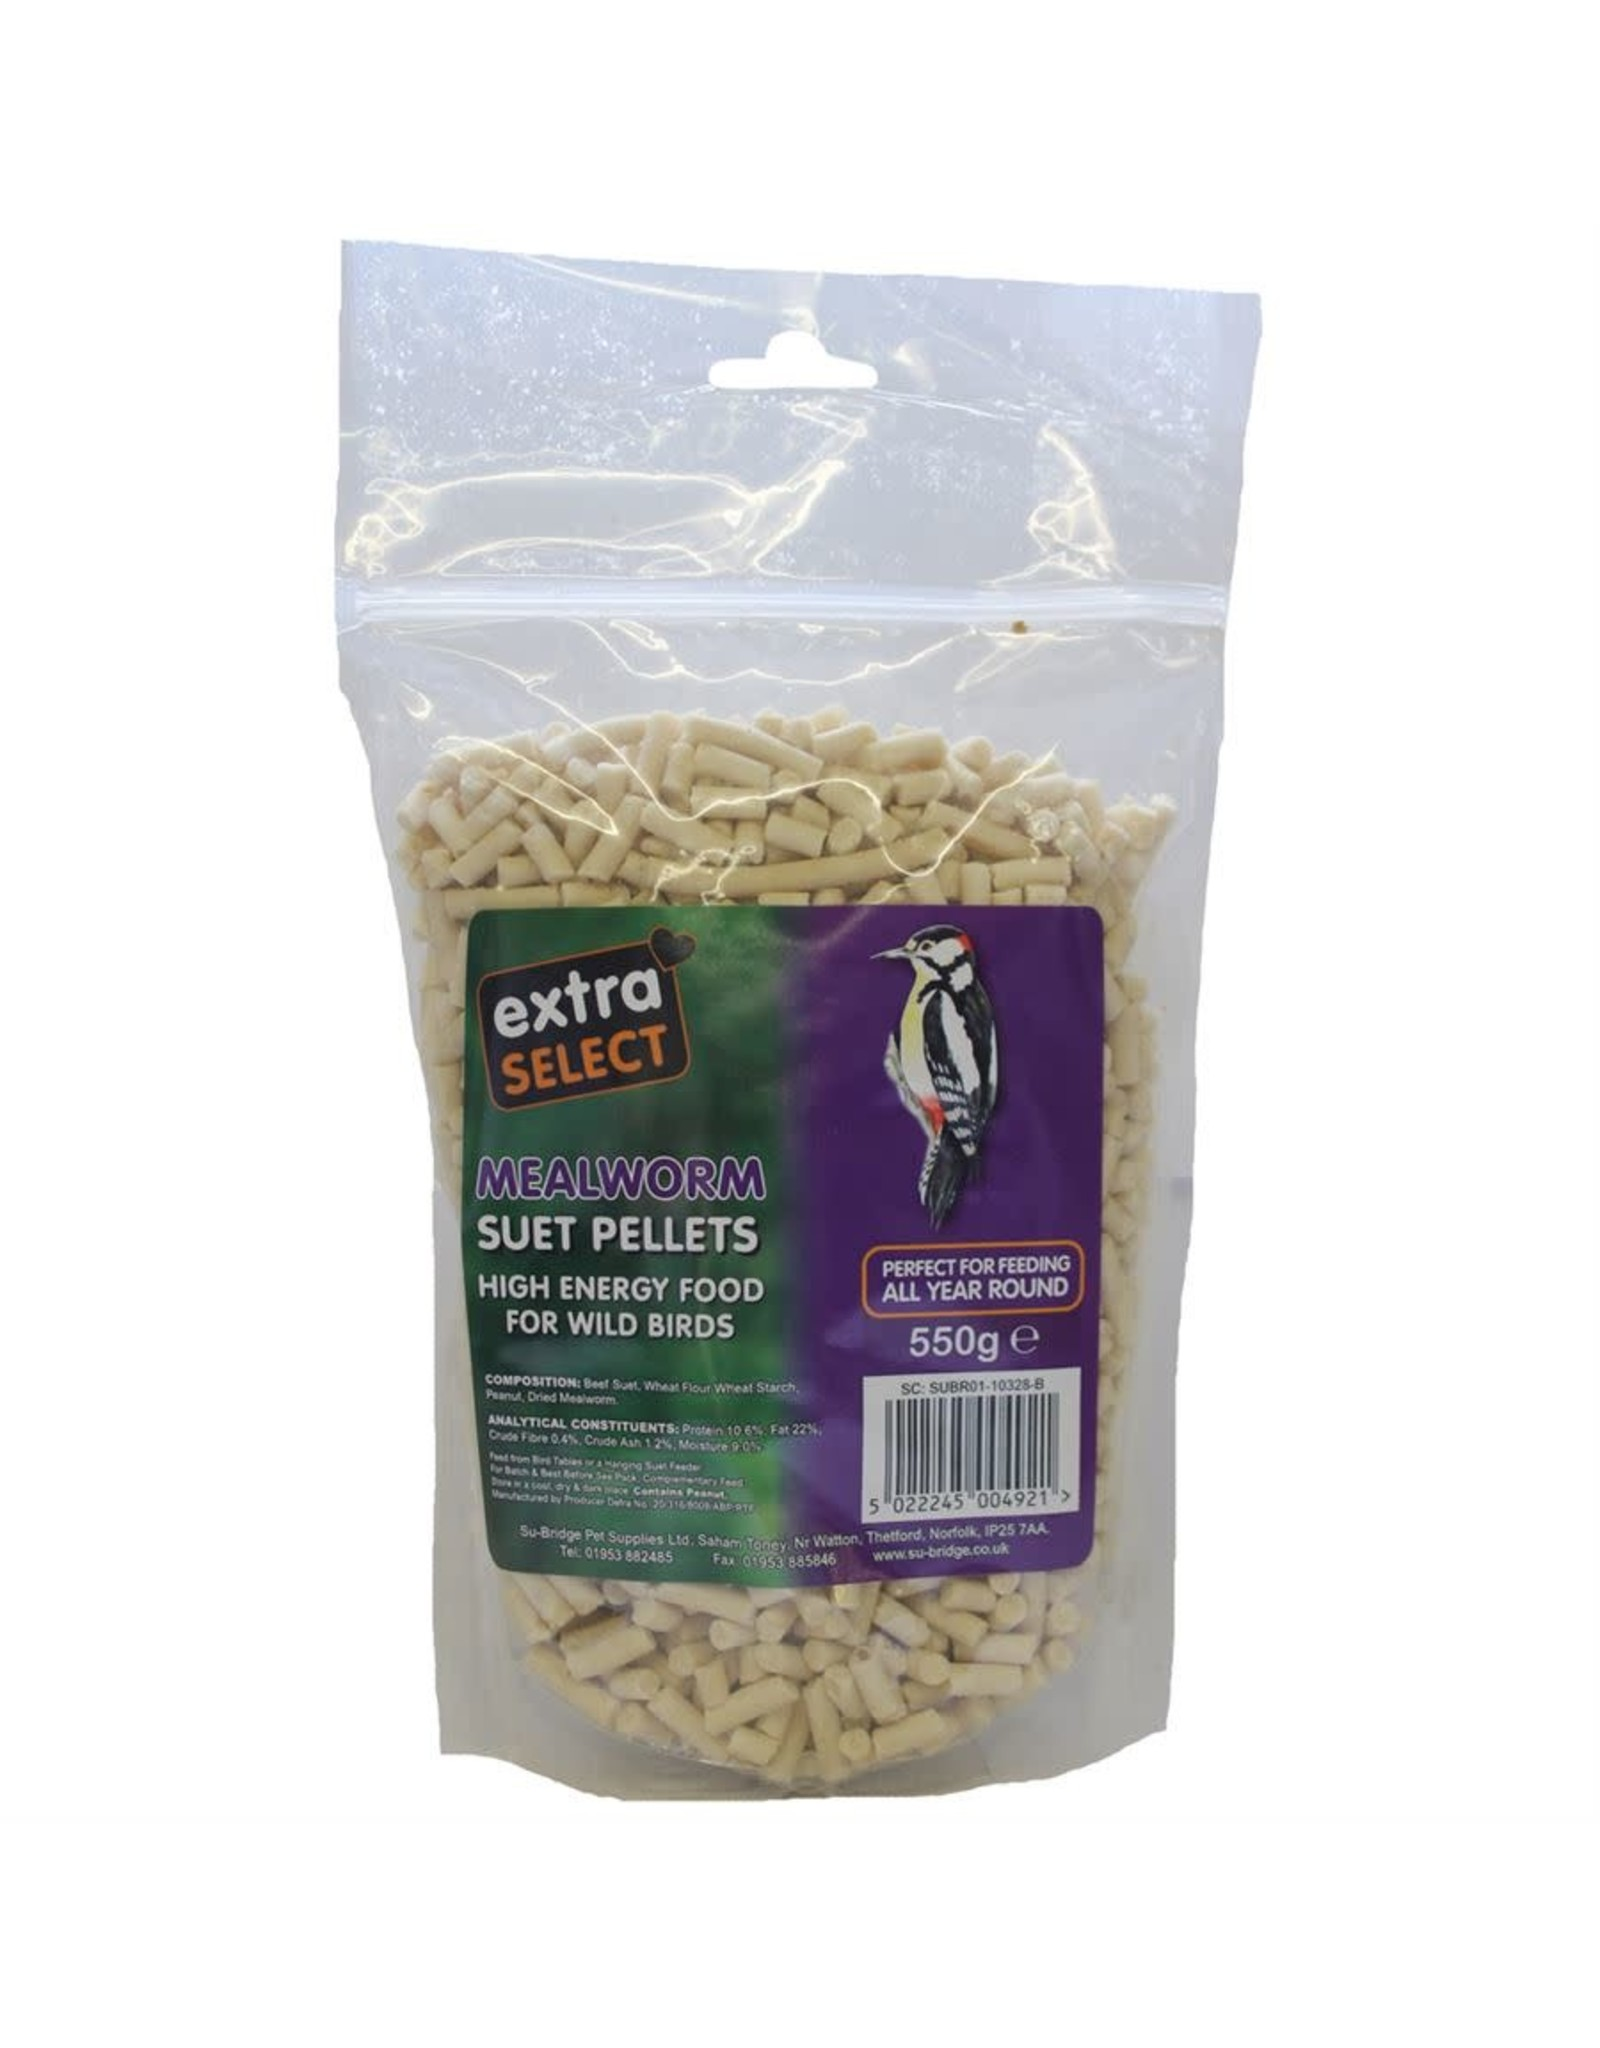 Extra Select High Energy Wild Bird Suet Pellets with Mealworm 550g